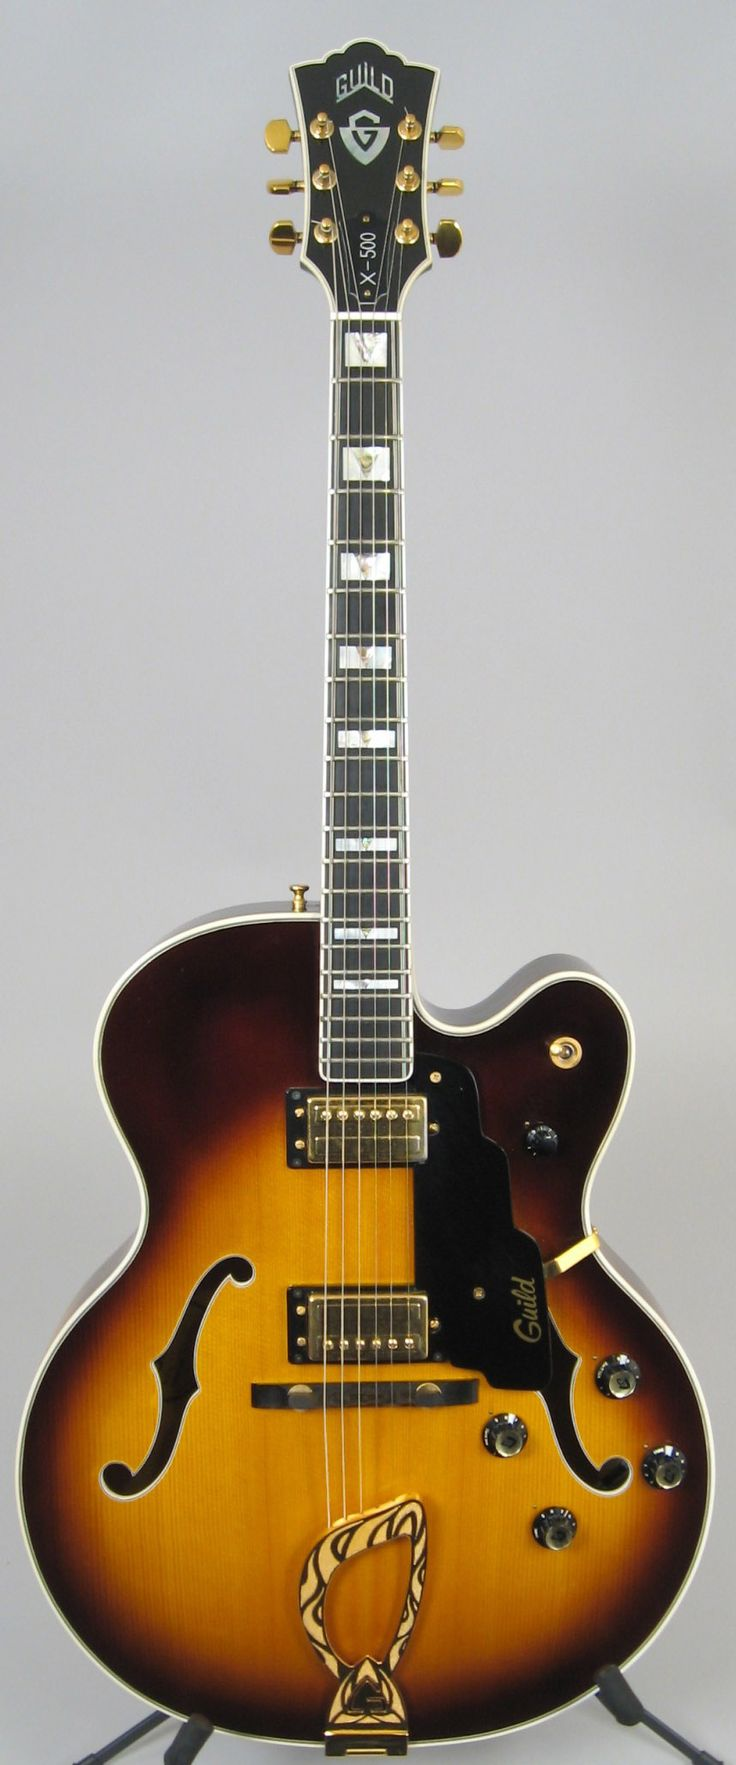 Guild X-500 Jazz Guitar from 1978.